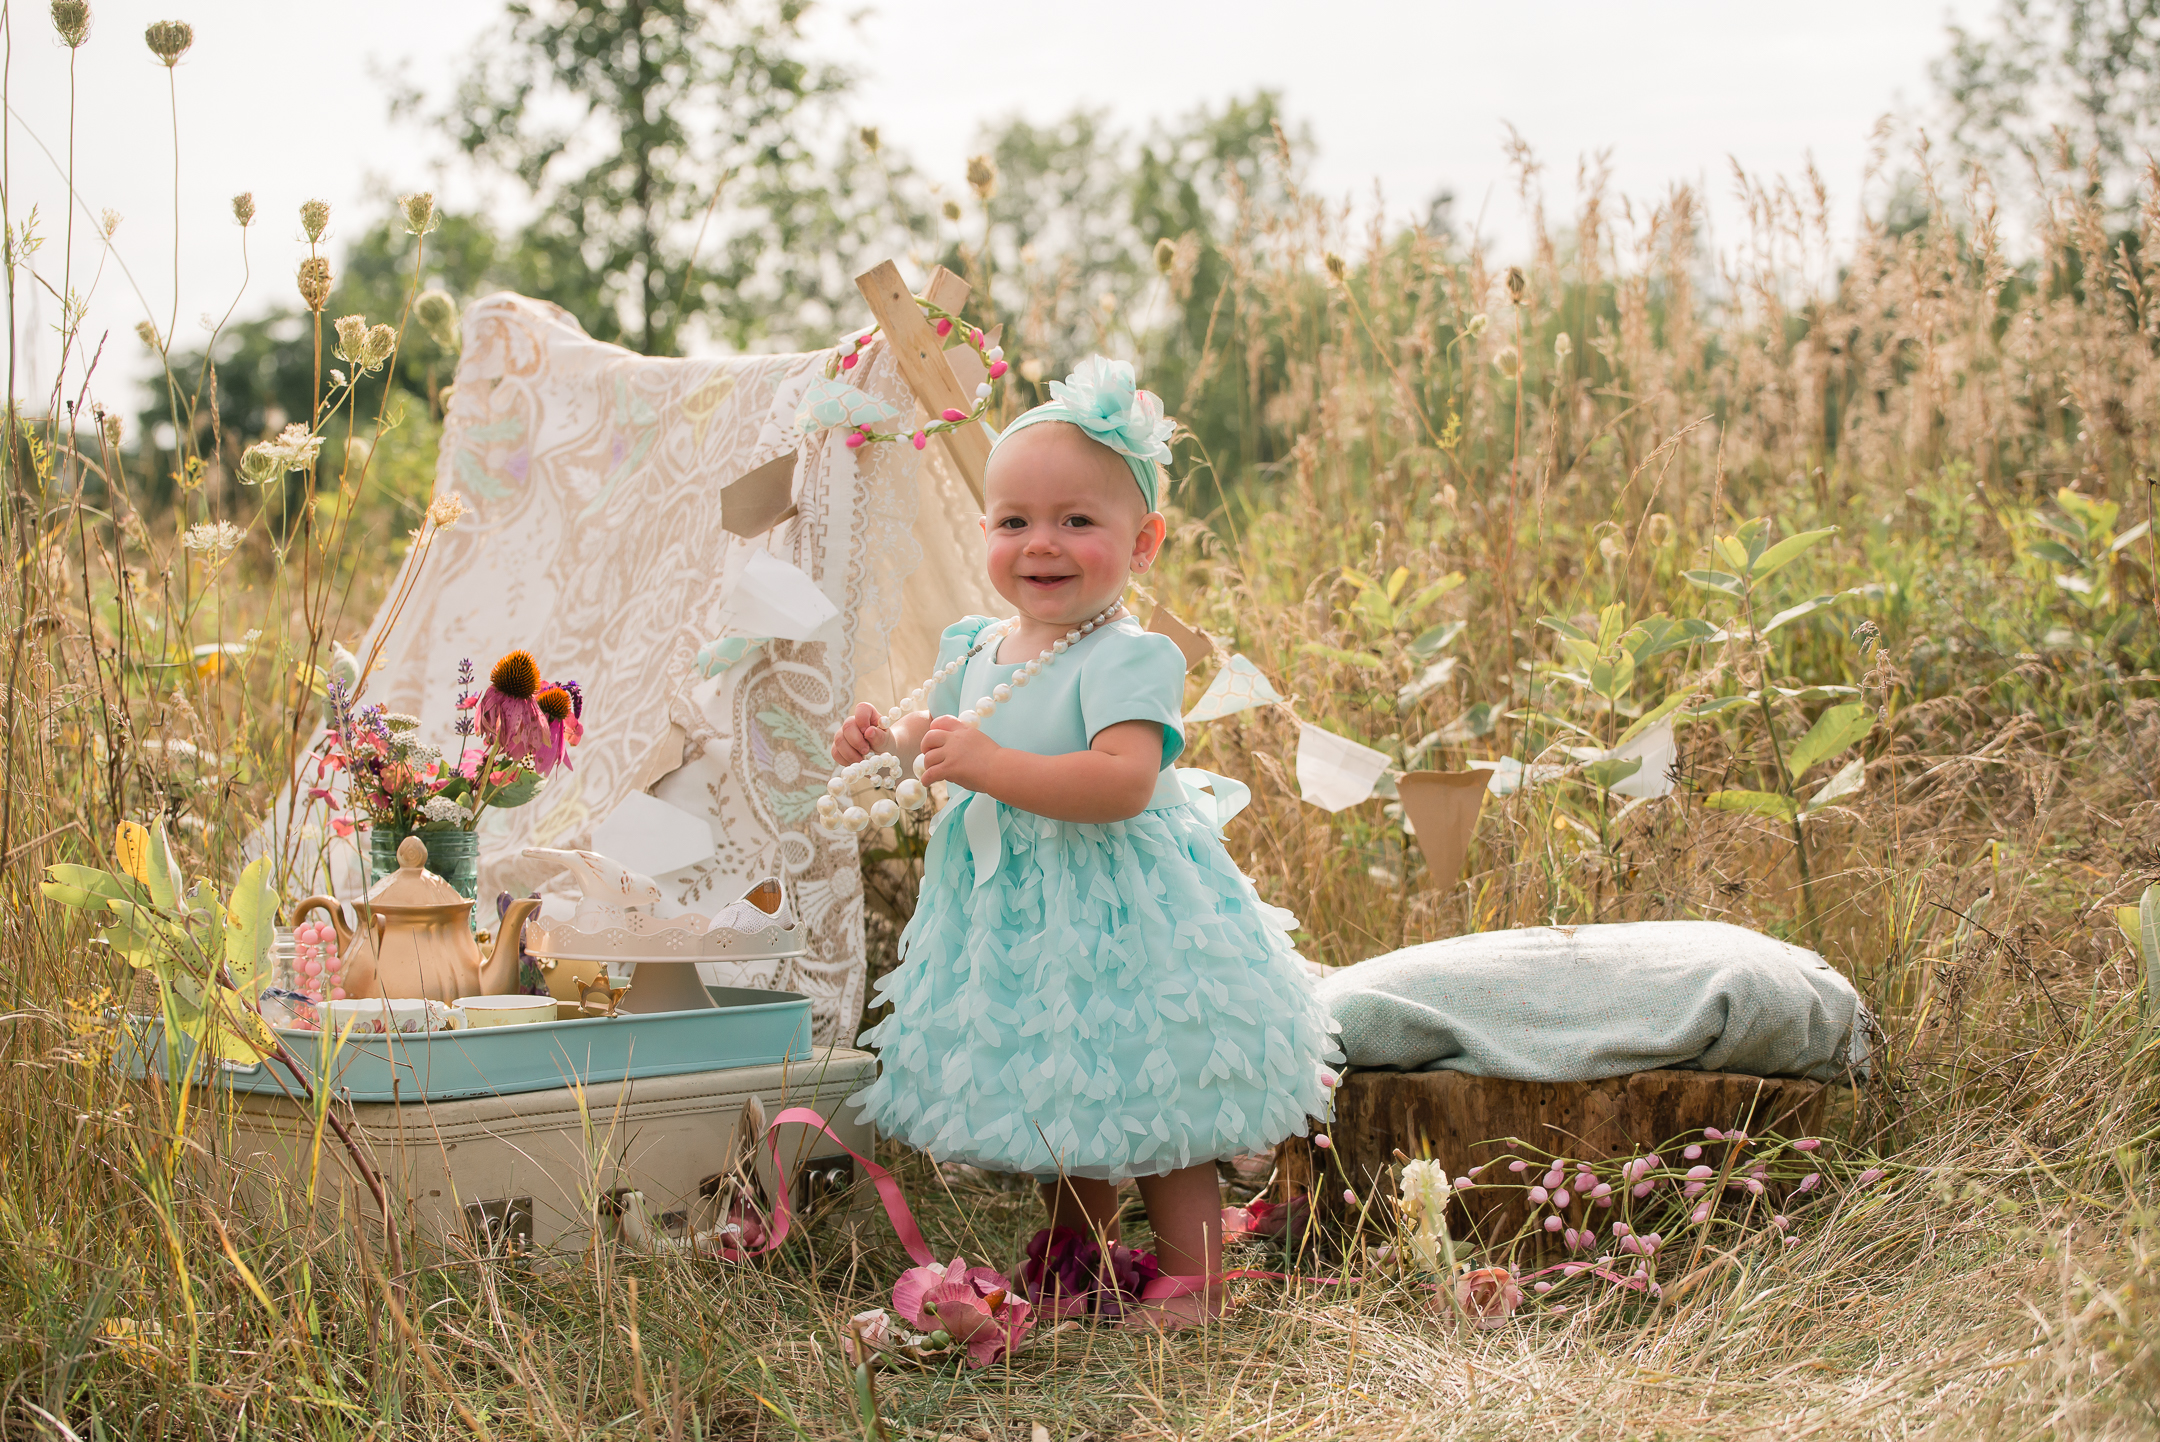 Naomi Lucienne Photography - First Birthday - 170829140.jpg